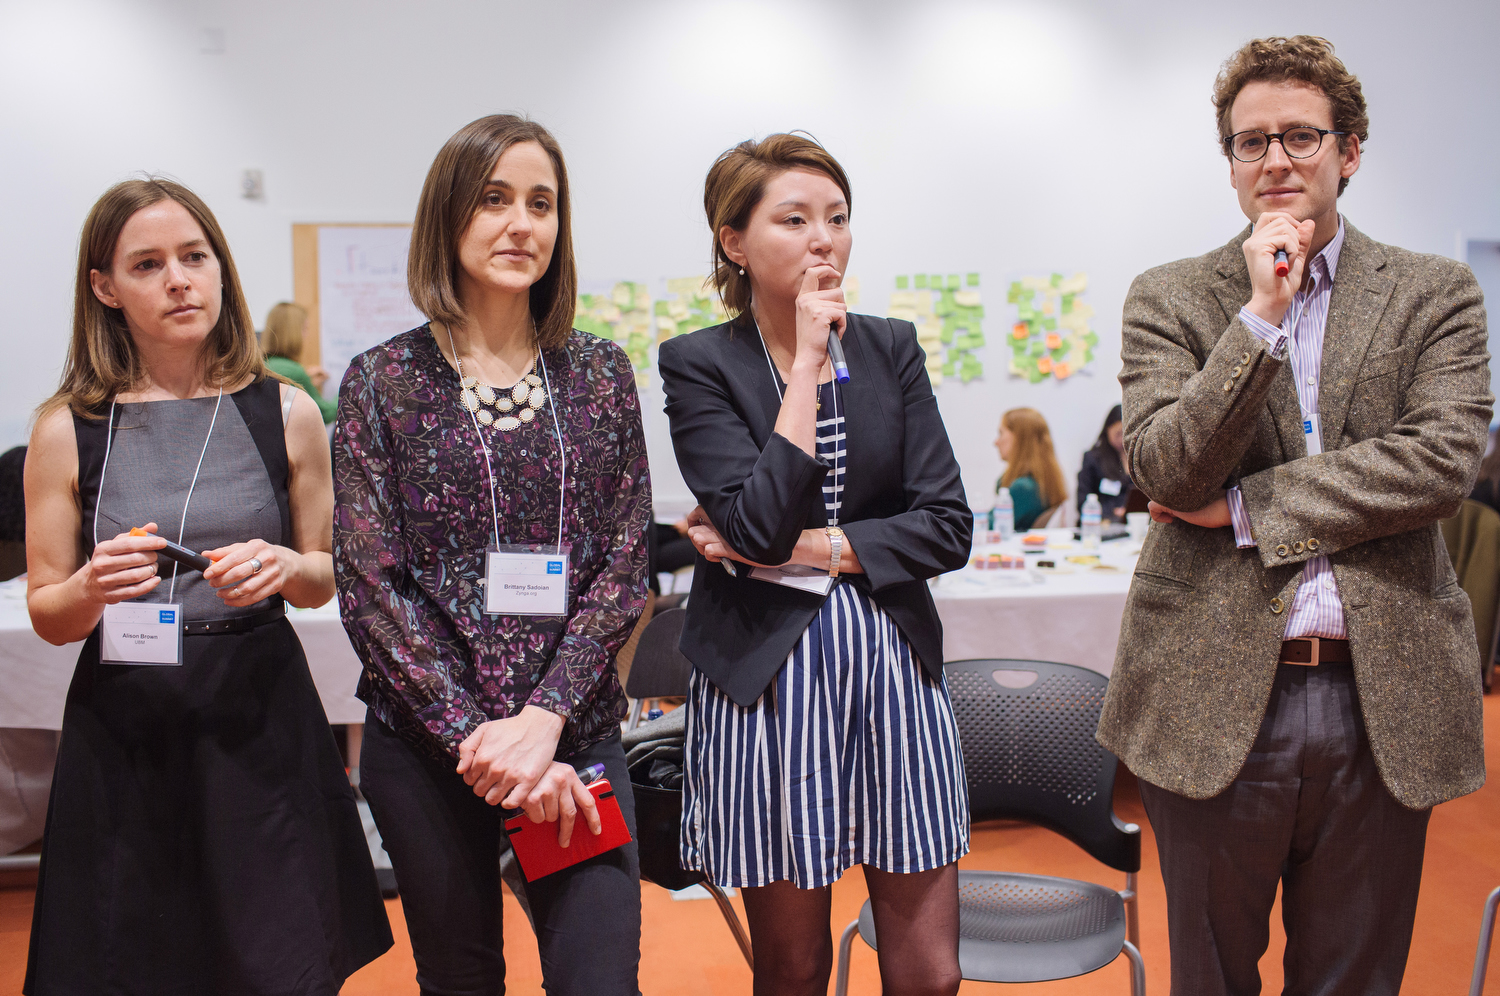 Brainstorming at the 2014 Global Pro Bono Summit in San Francisco on Feb. 26, 2014.